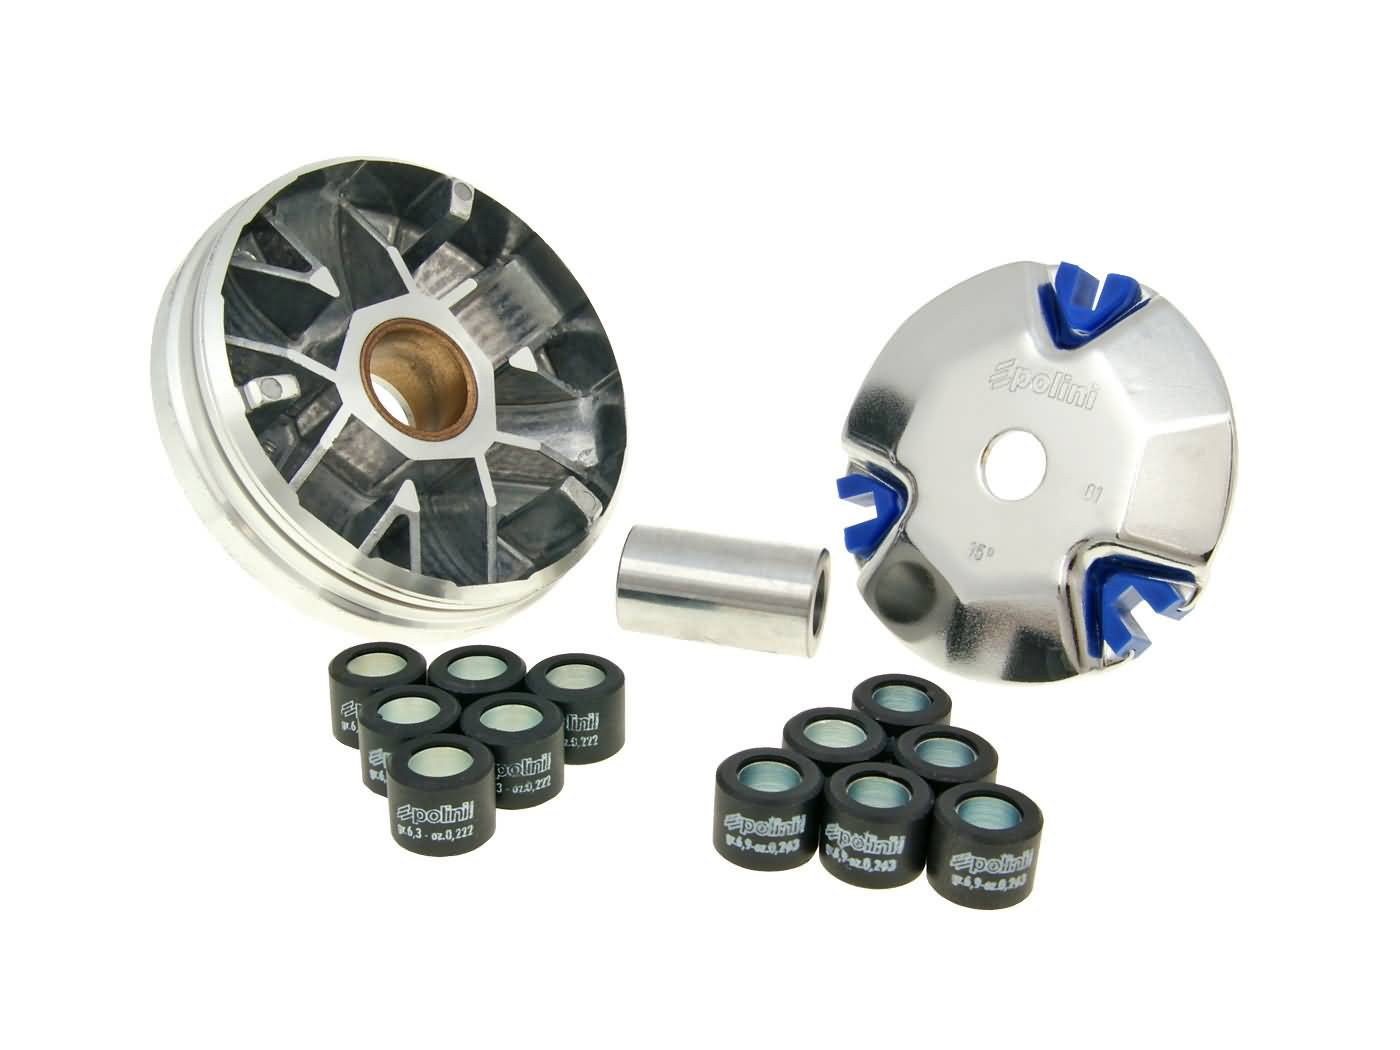 Scooter Moped Polini Roller Set 16x13mm 6.9g